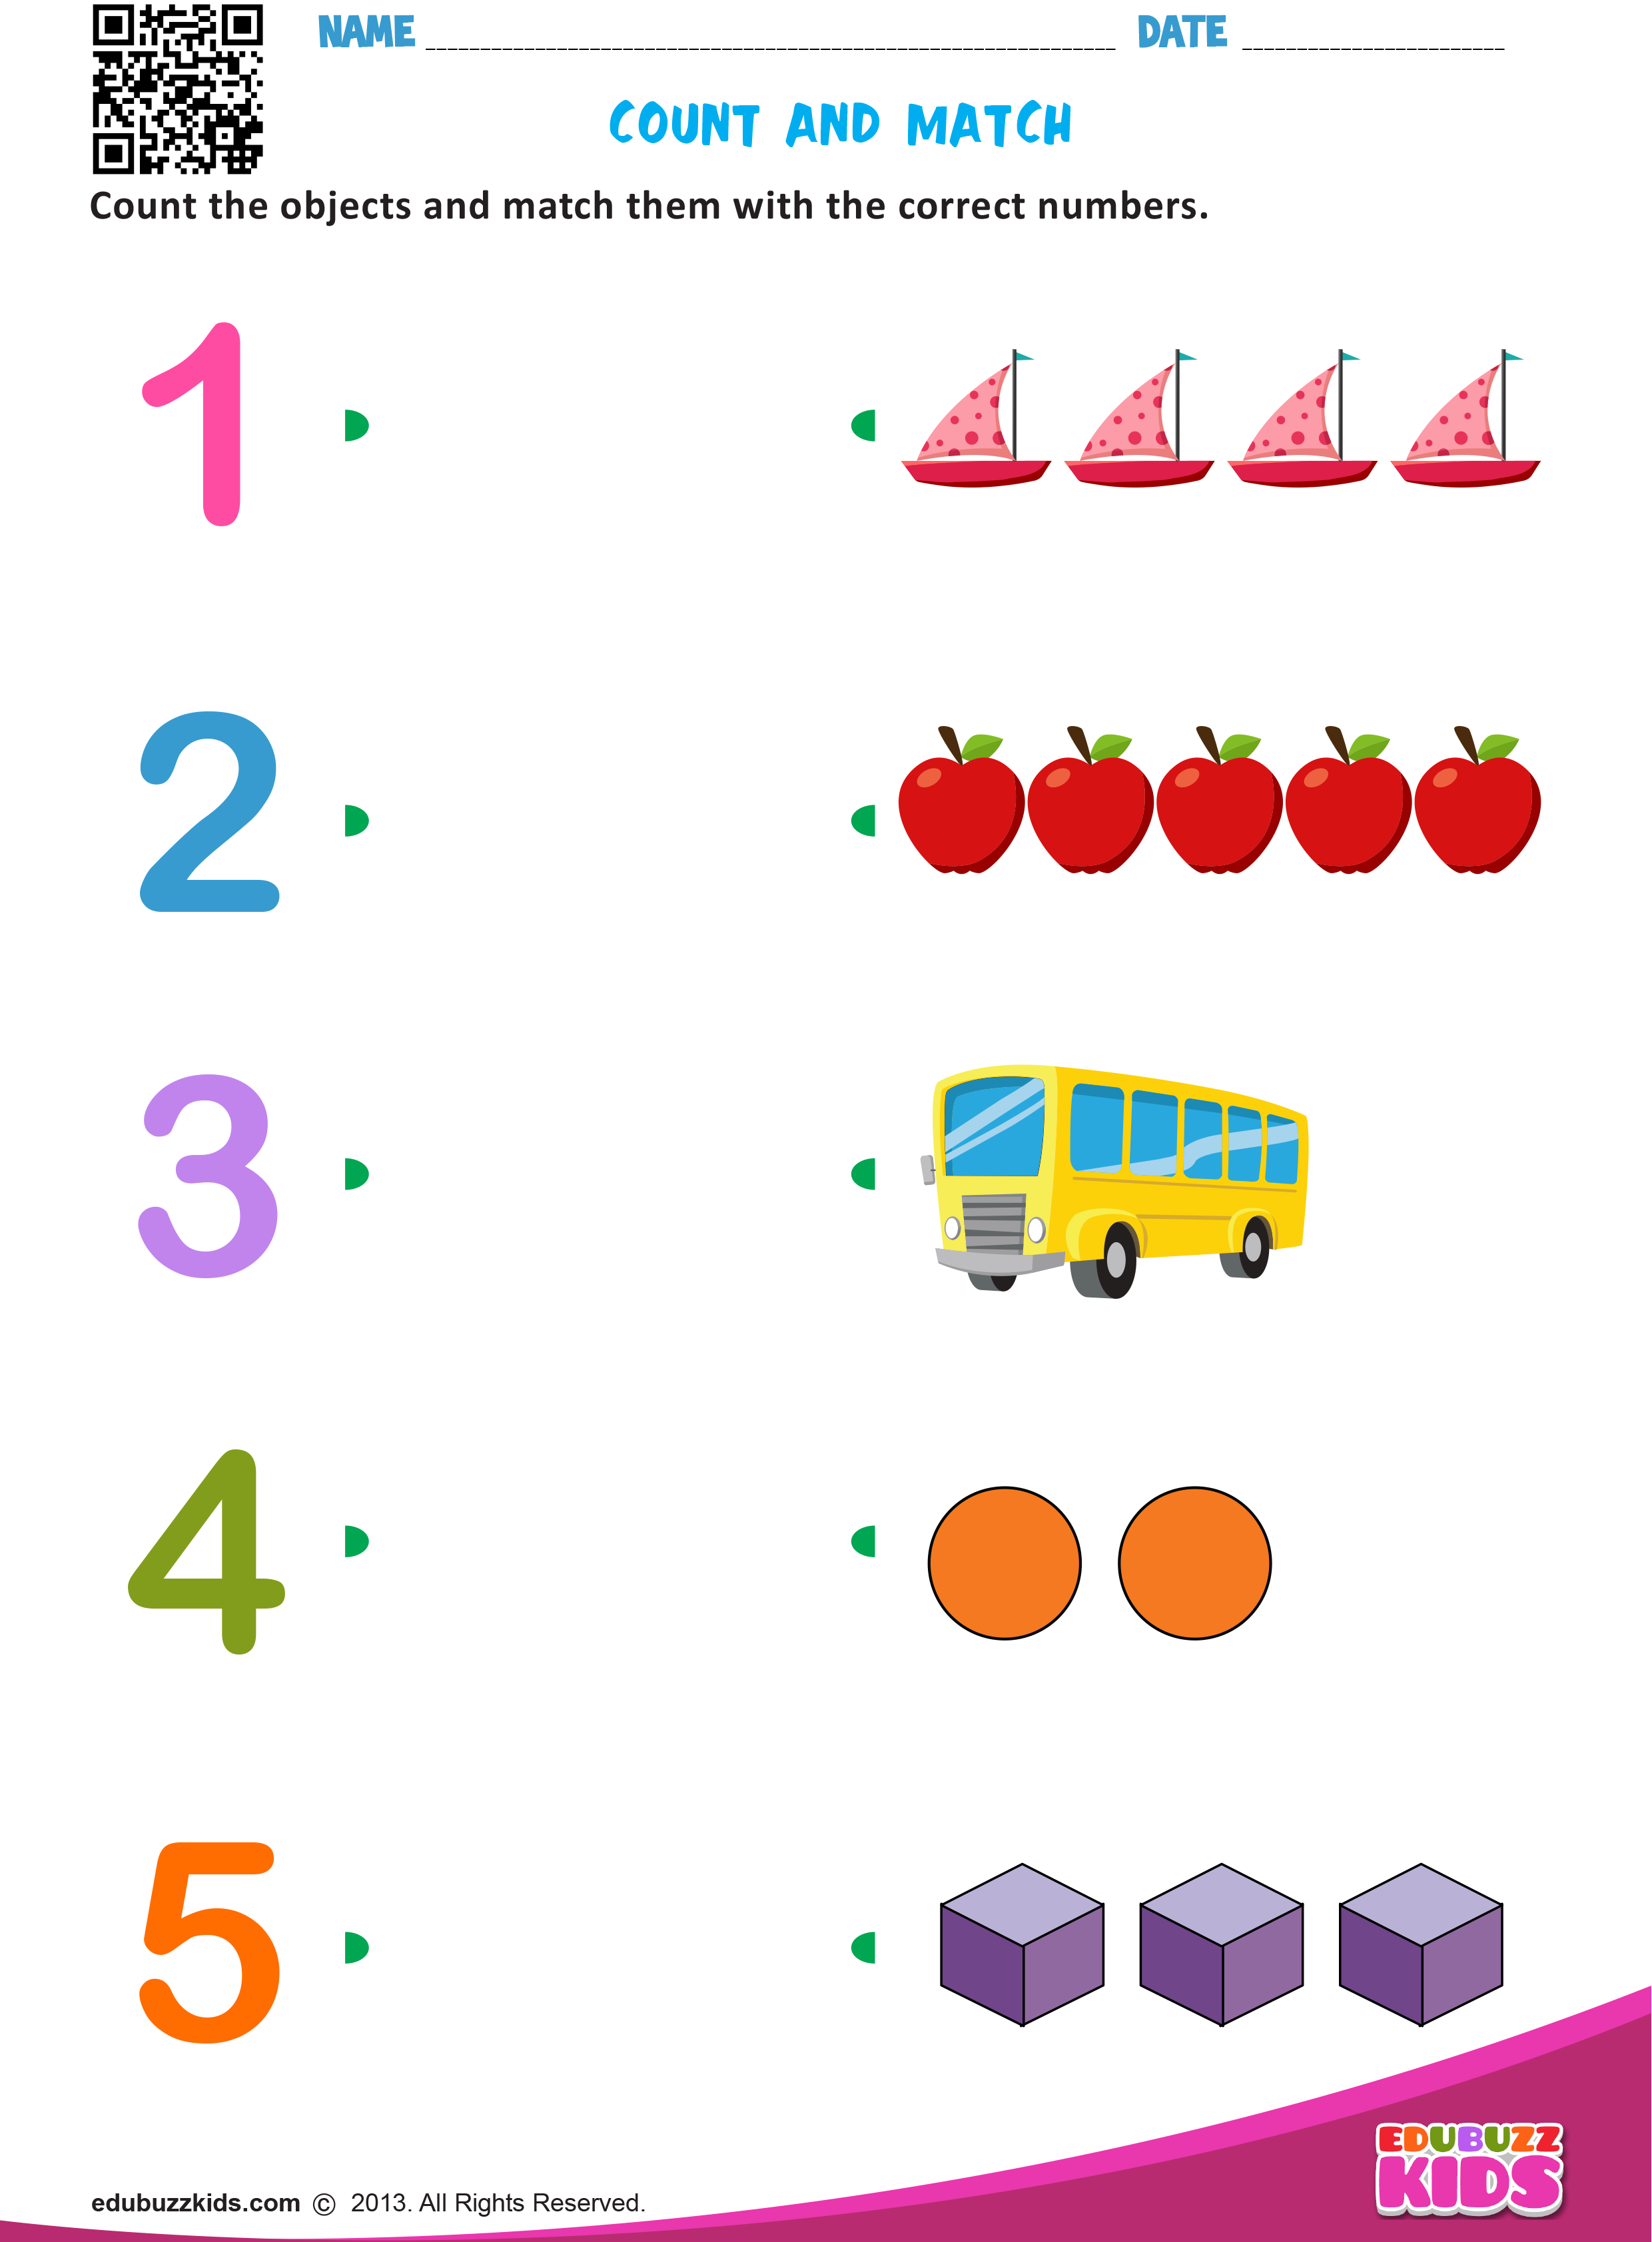 Count And Match Kids Worksheets Preschool Preschool Math Worksheets Preschool Worksheets [ 3366 x 2480 Pixel ]